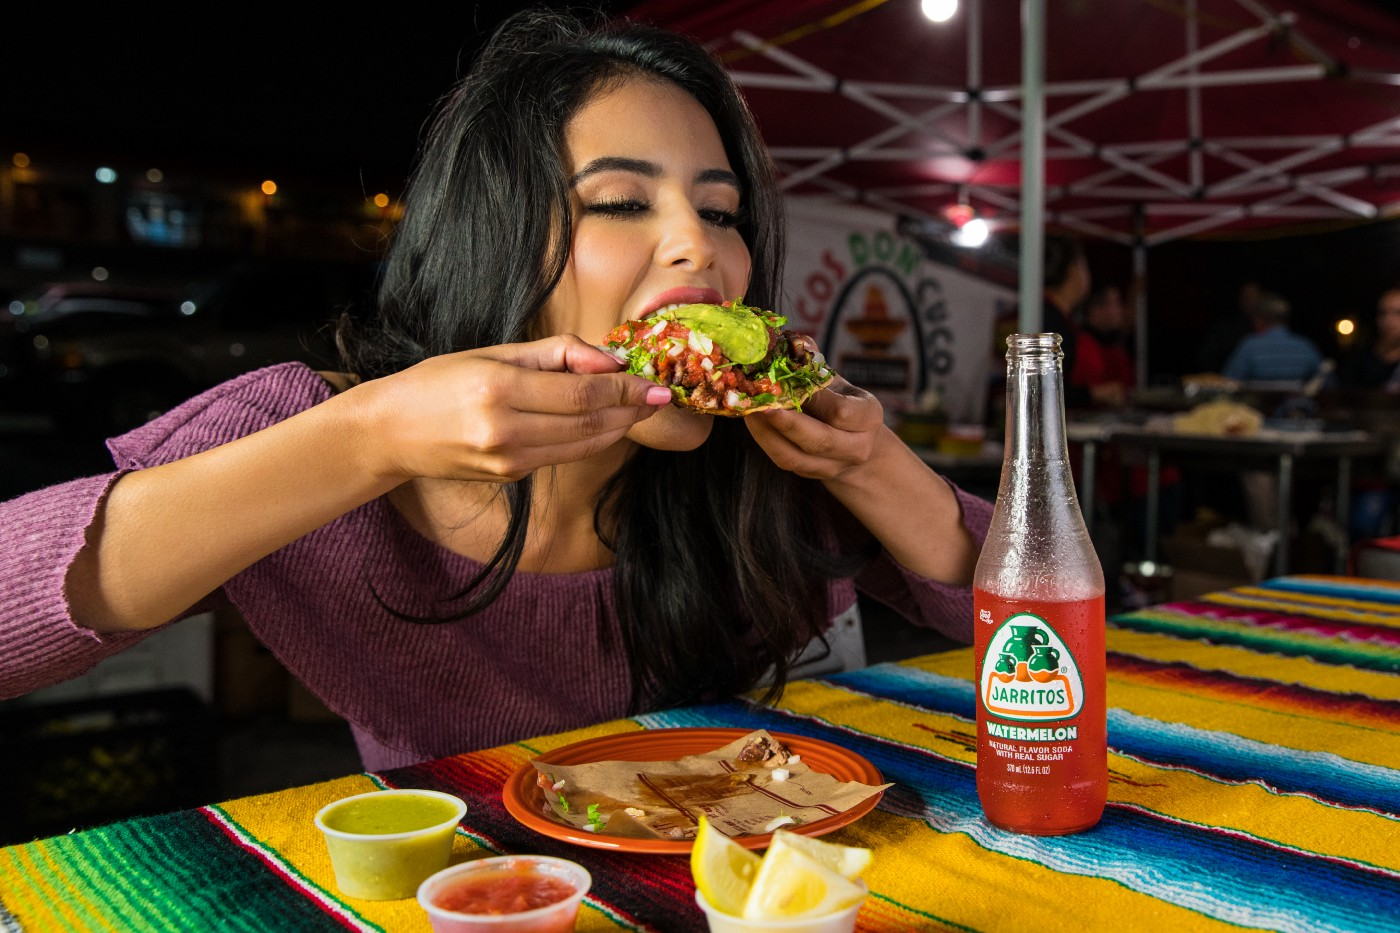 A young lady eating an overfilled taco